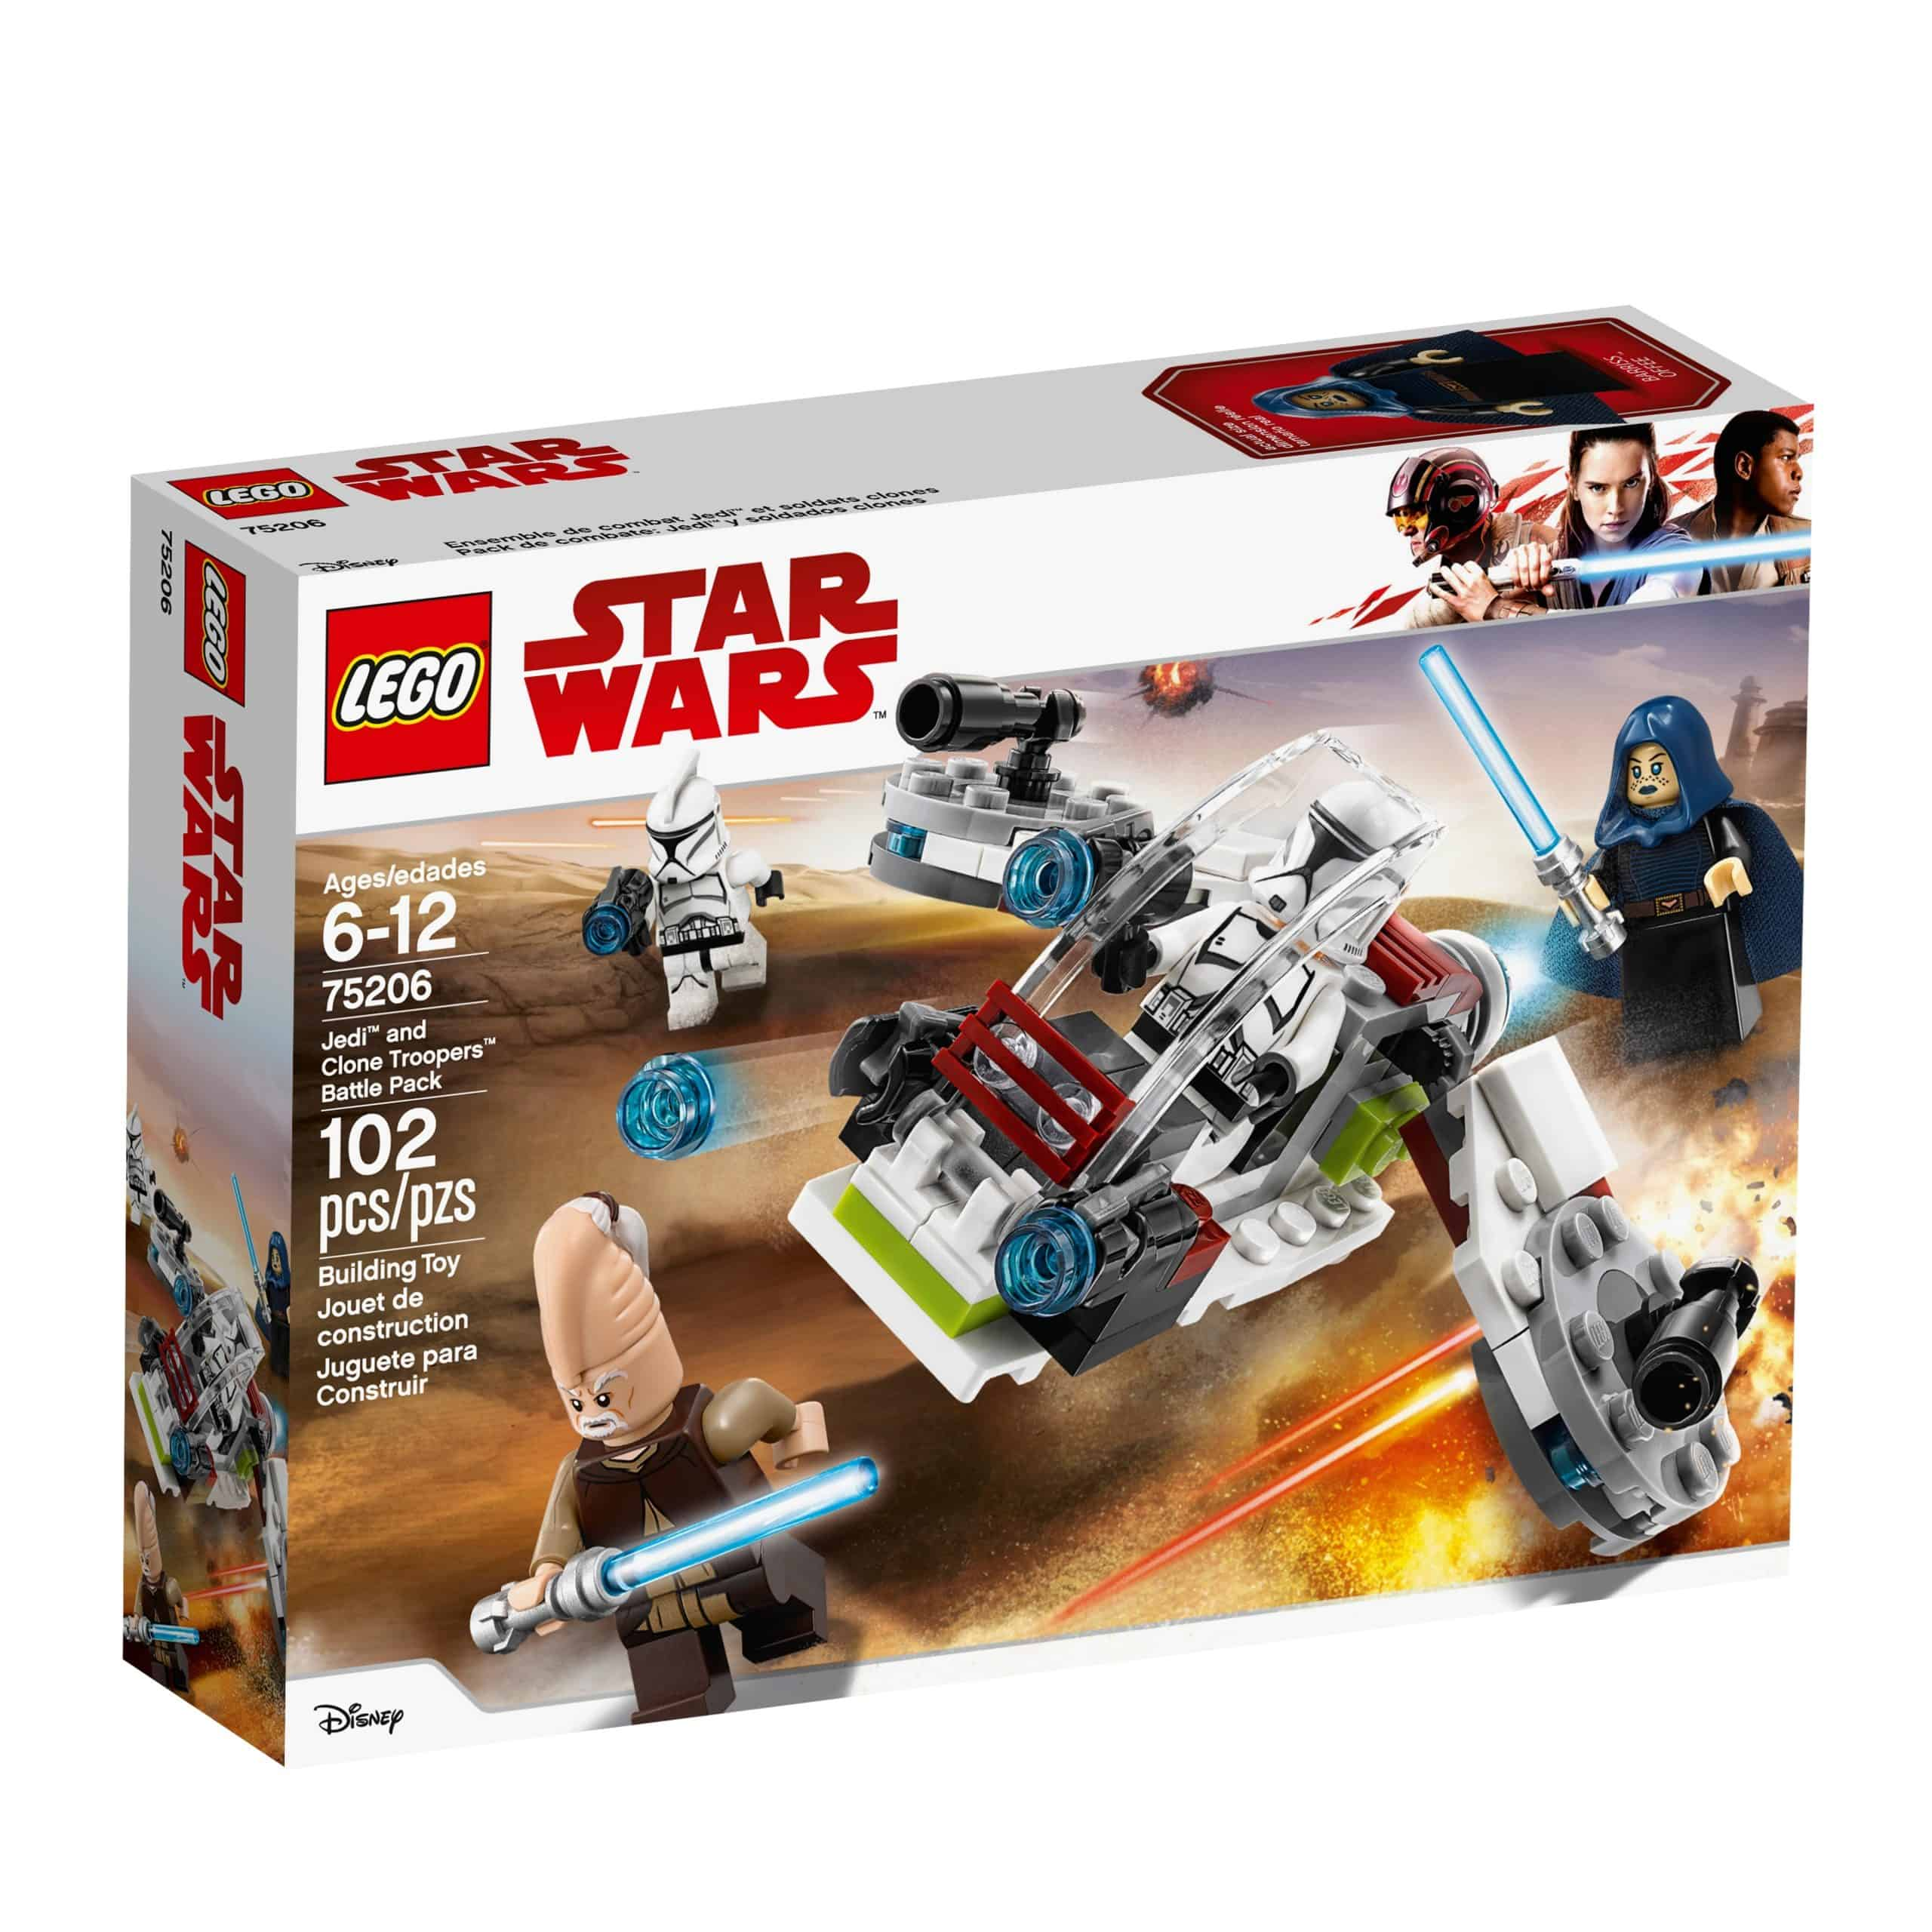 lego 75206 jedi und clone troopers battle pack scaled